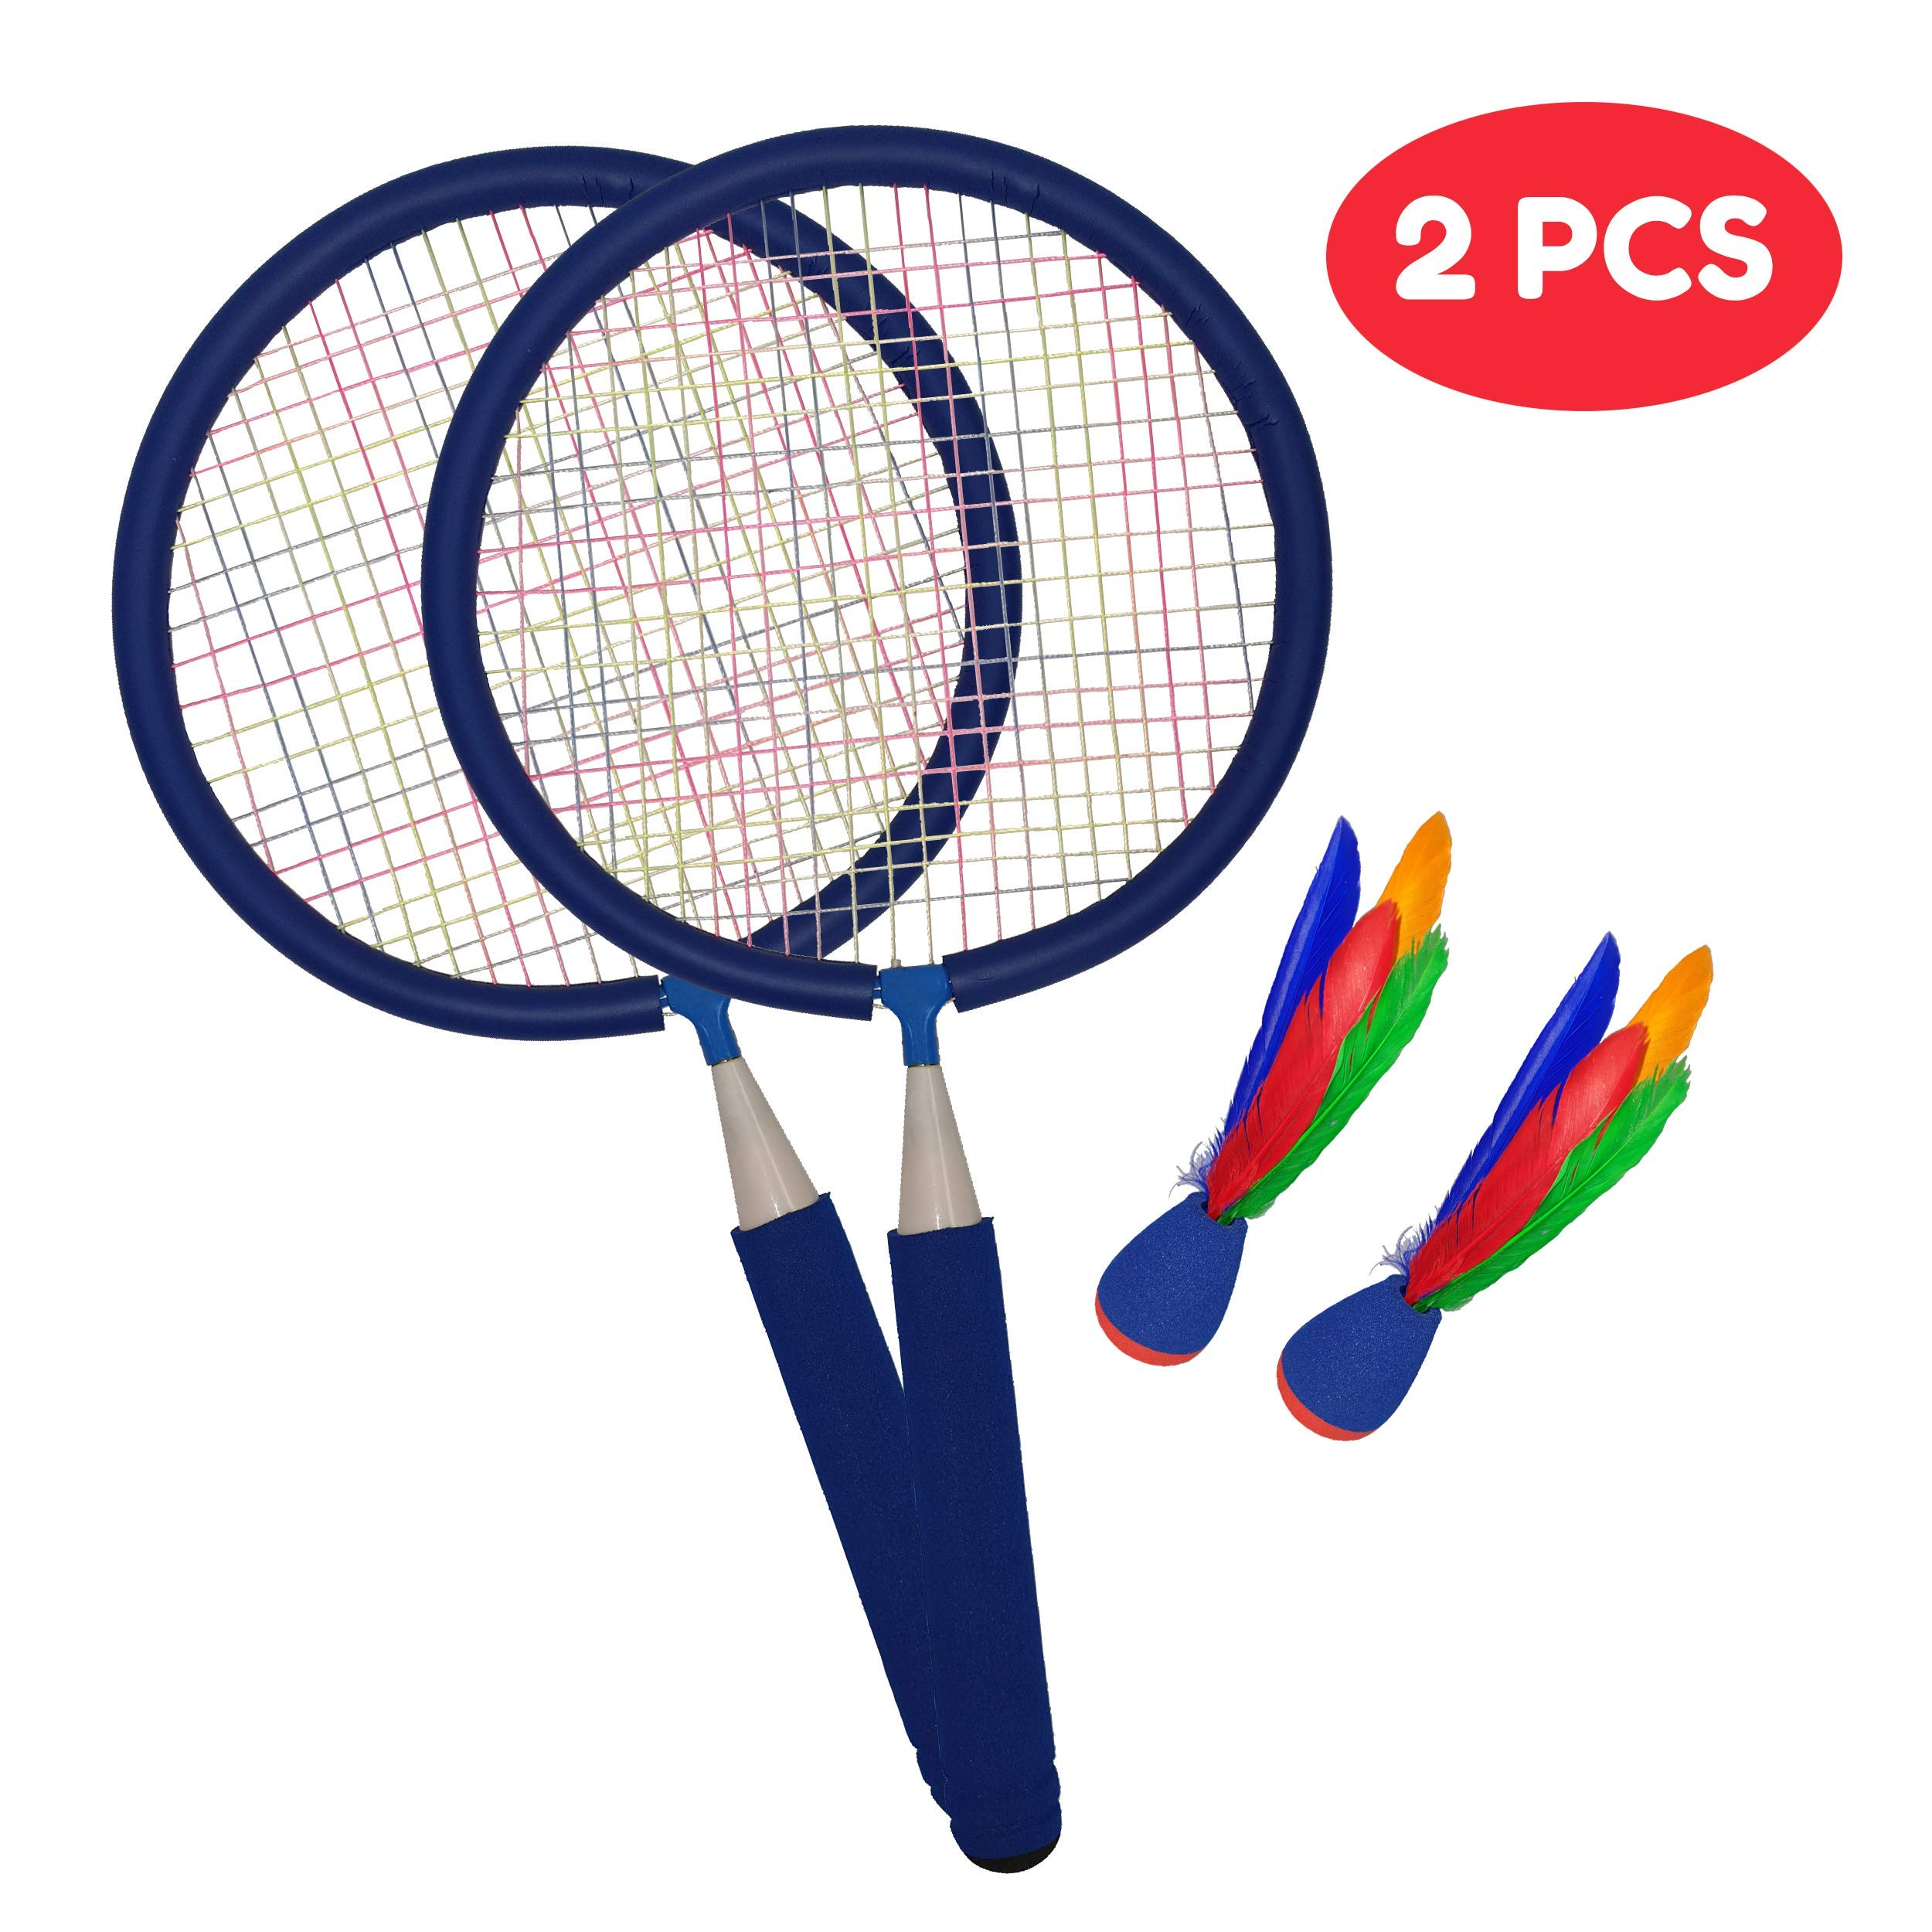 Macro Giant Badminton Set, with 2 Blue Rackets and 2 Birdie, Kids' Play, Backyard, Playground